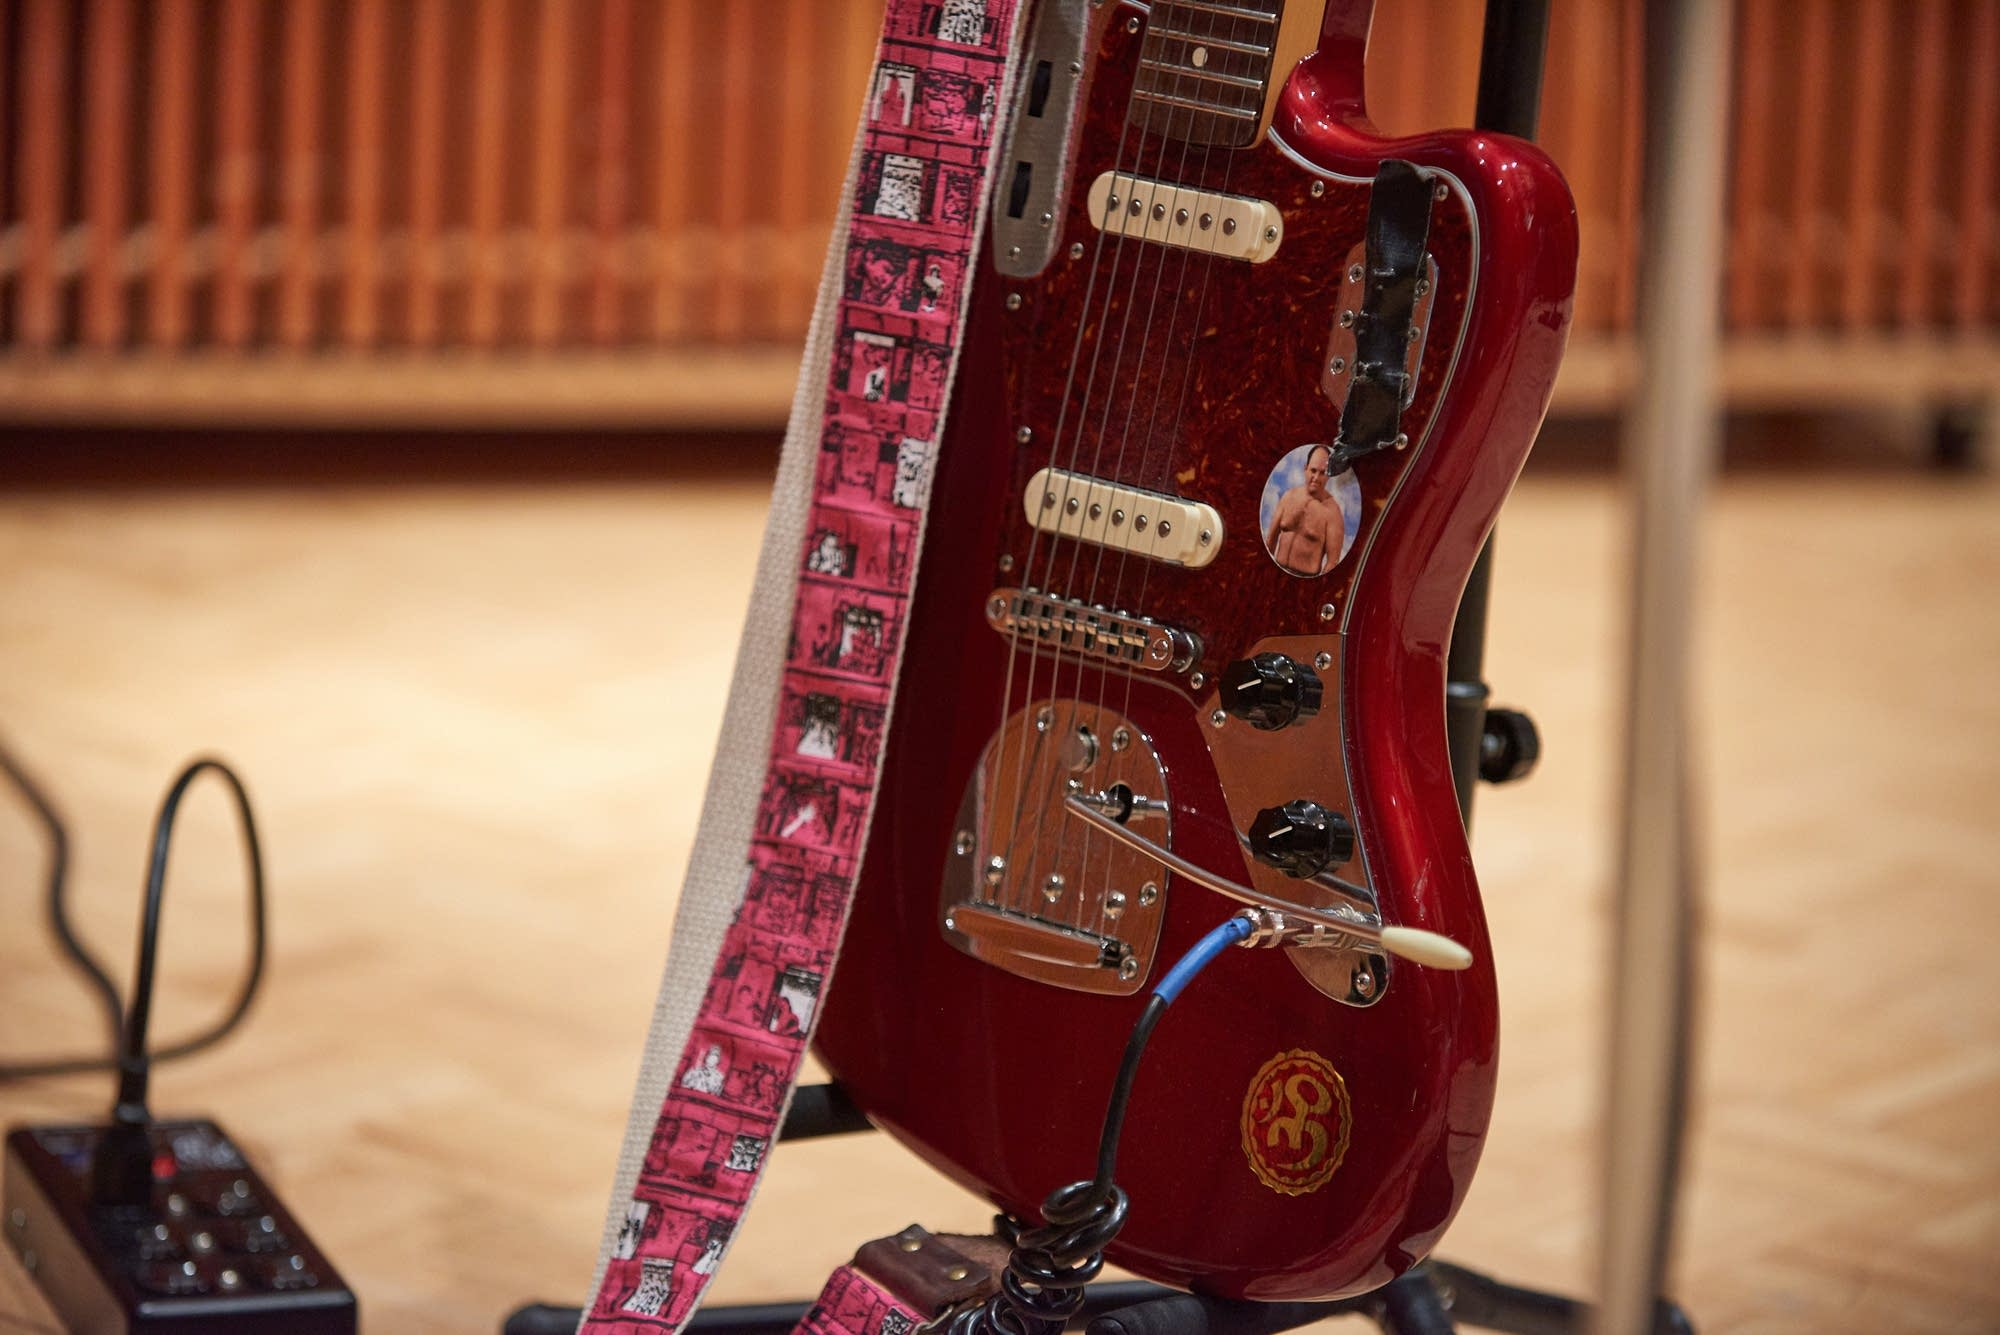 Ron Gallo's Fender Jaguar in The Current studio